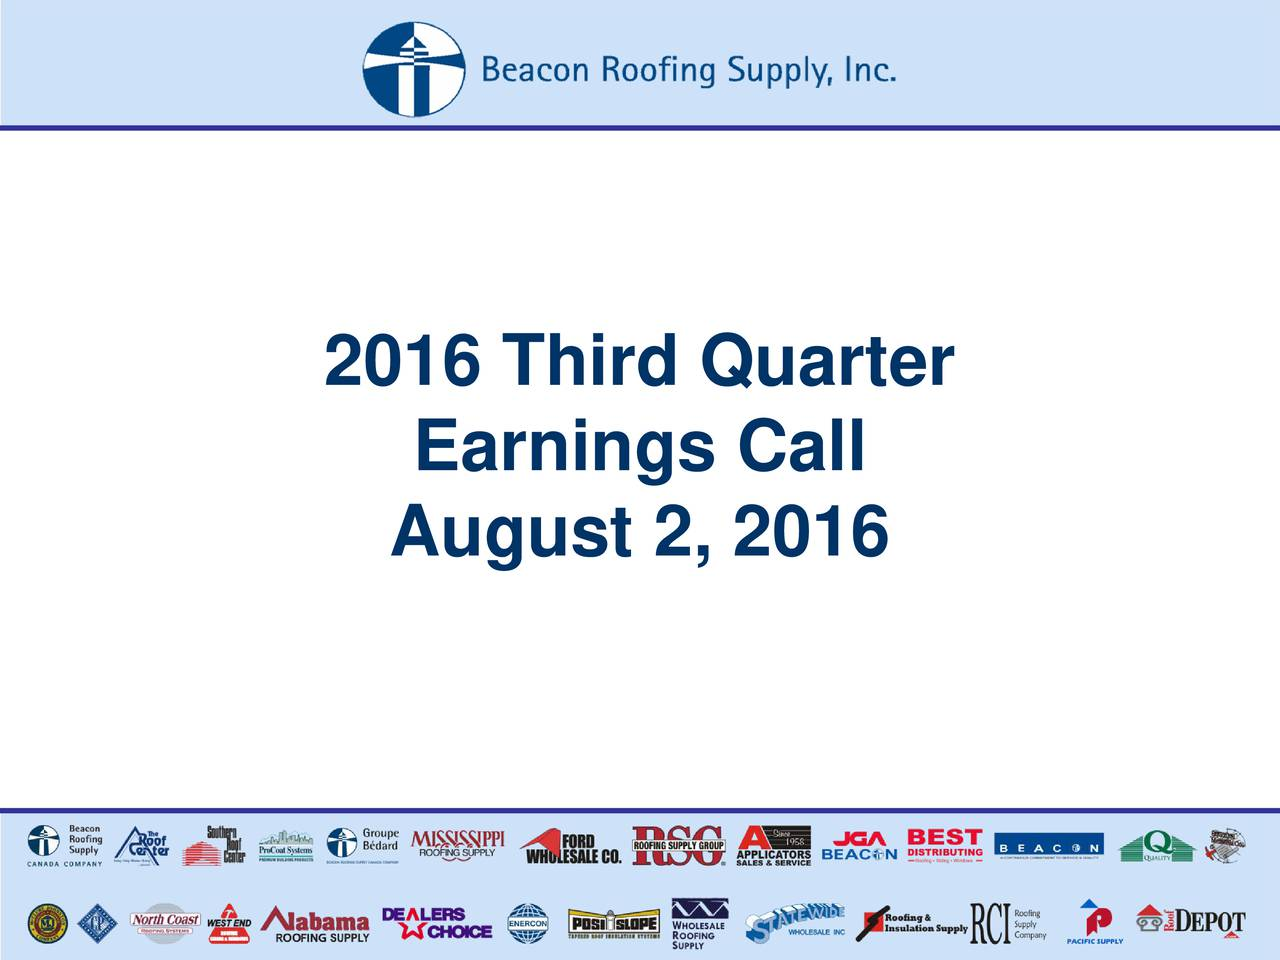 August 2, 2016 2016 Third Quarter Earnings Call August 2, 2016 www.BeaconRoofingSupply.com